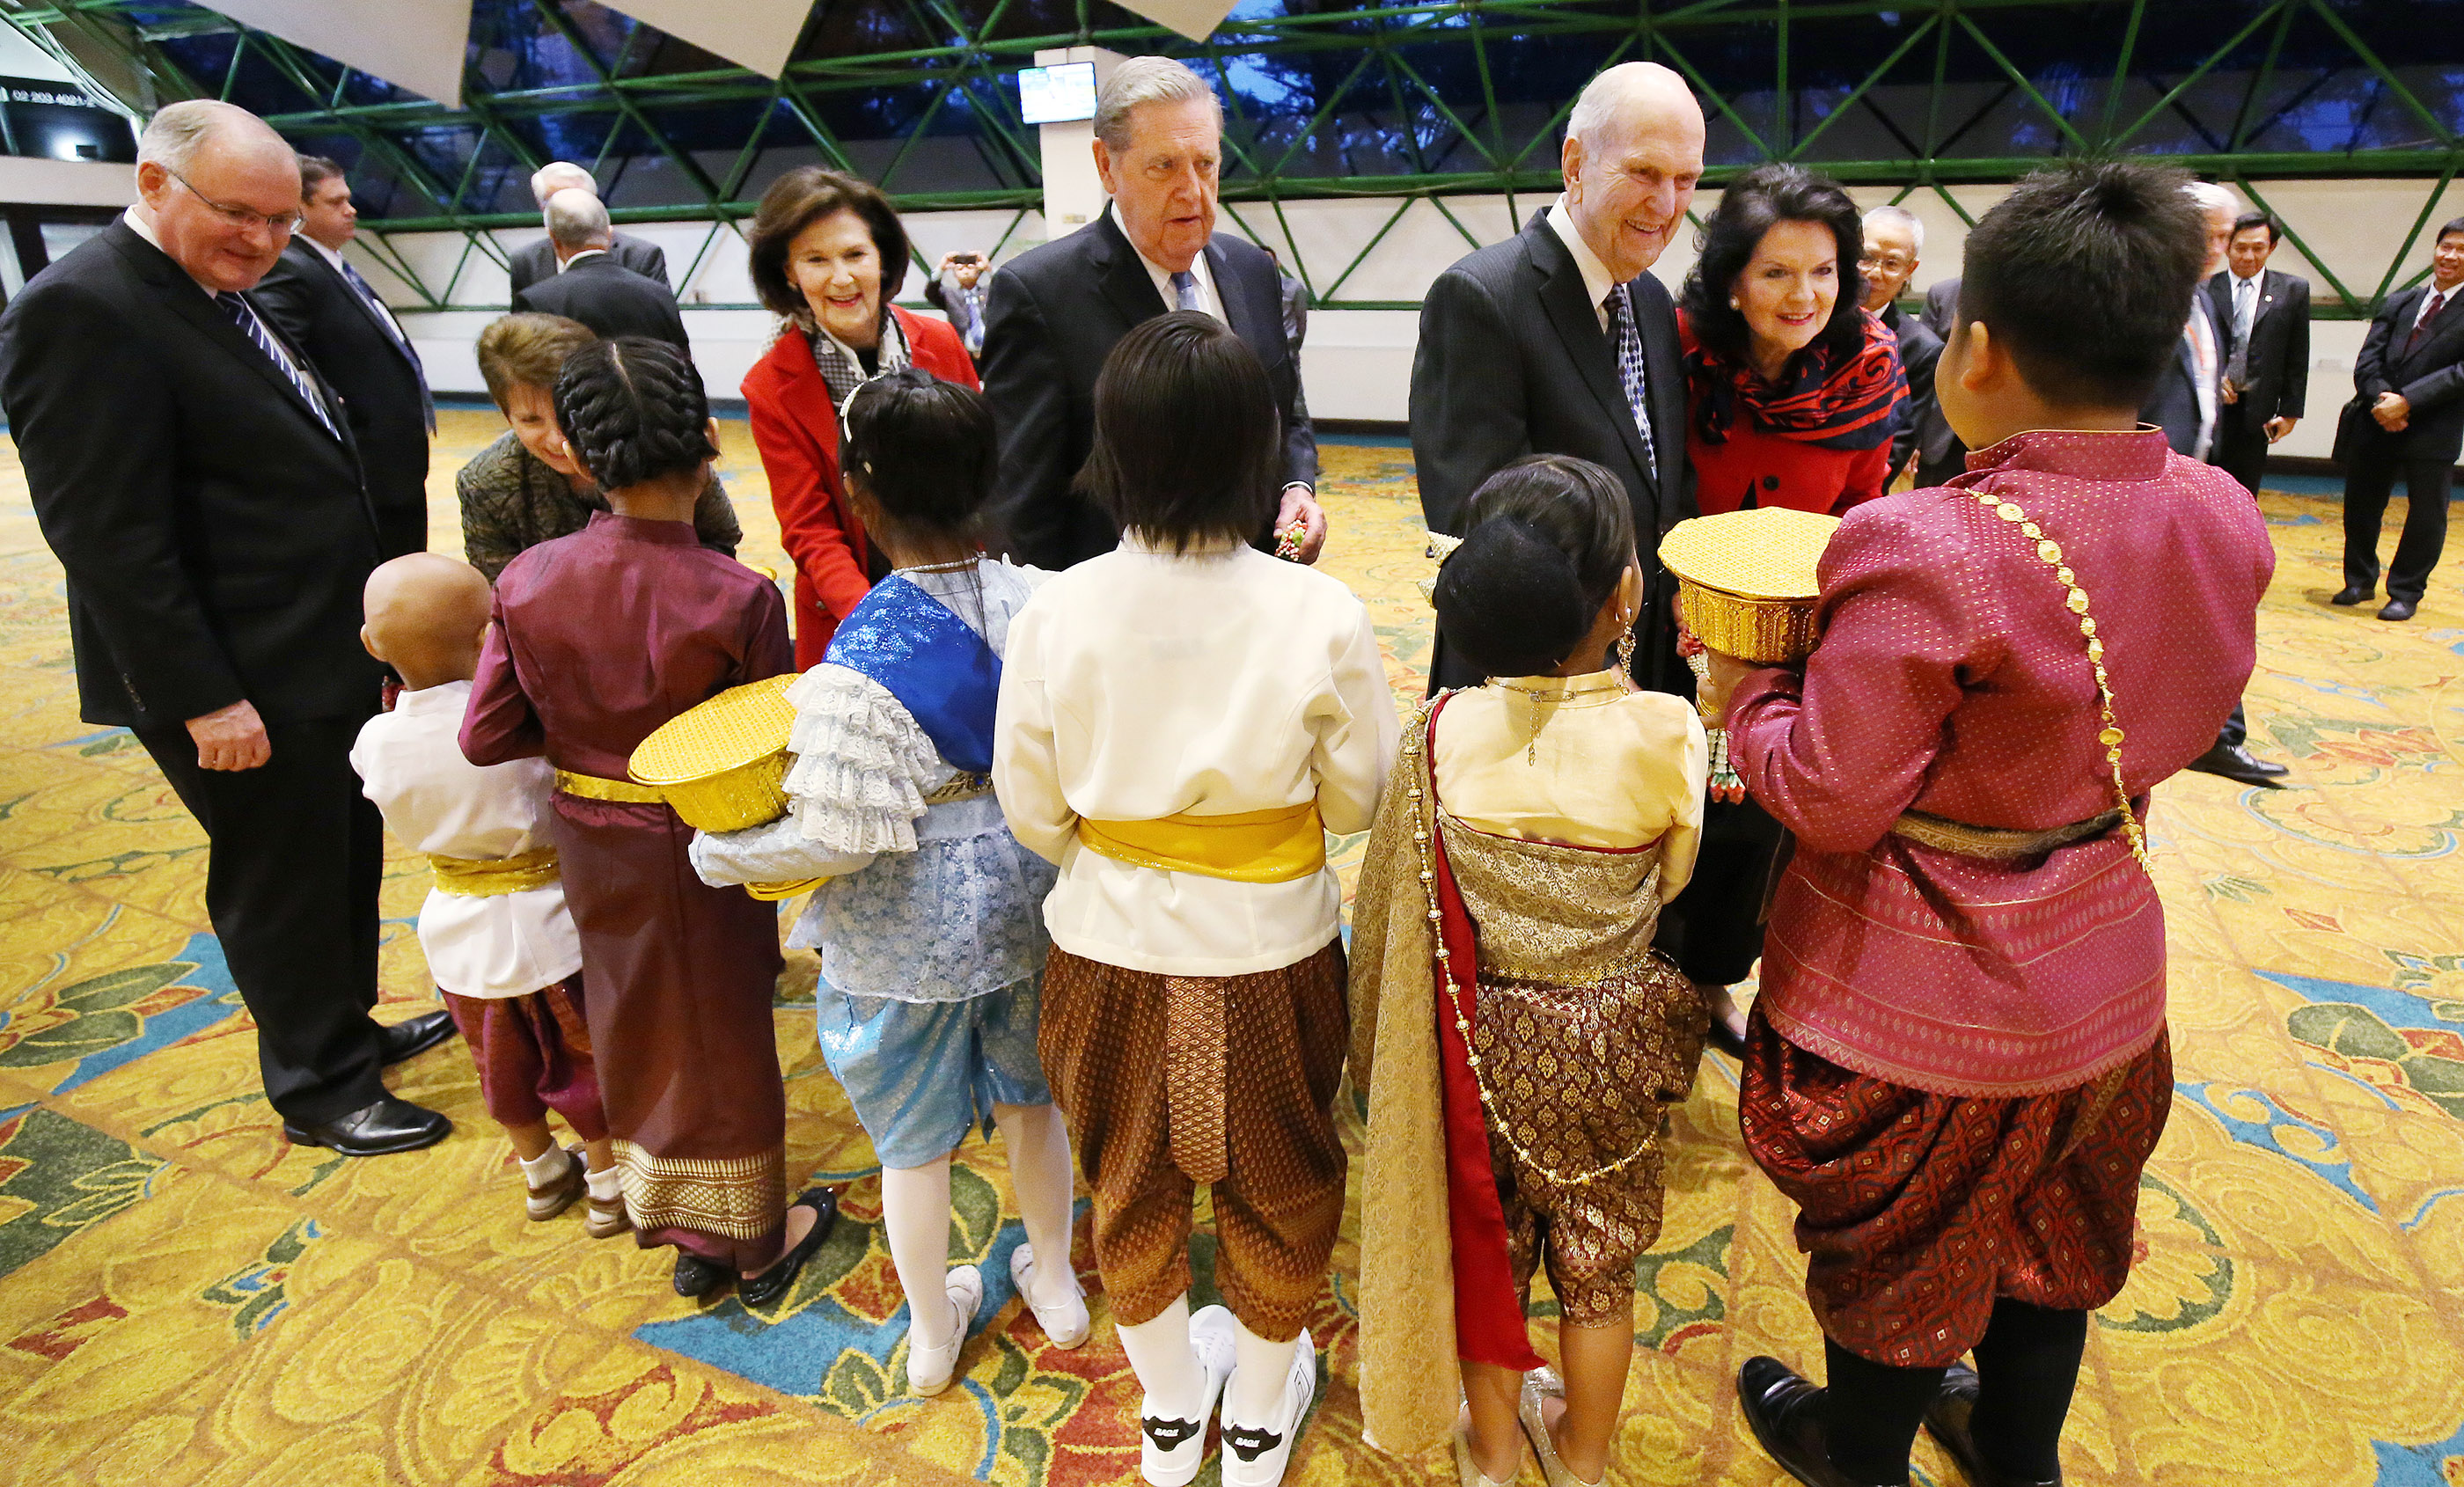 President Russell M. Nelson and his wife, Sister Wendy Nelson, and Elder Jeffrey R. Holland, Quorum of the Twelve Apostles, and with his wife, Sister Patricia Holland, are greeted and given flowers by Primary children in Bangkok, Thailand, on Friday, April 20, 2018.